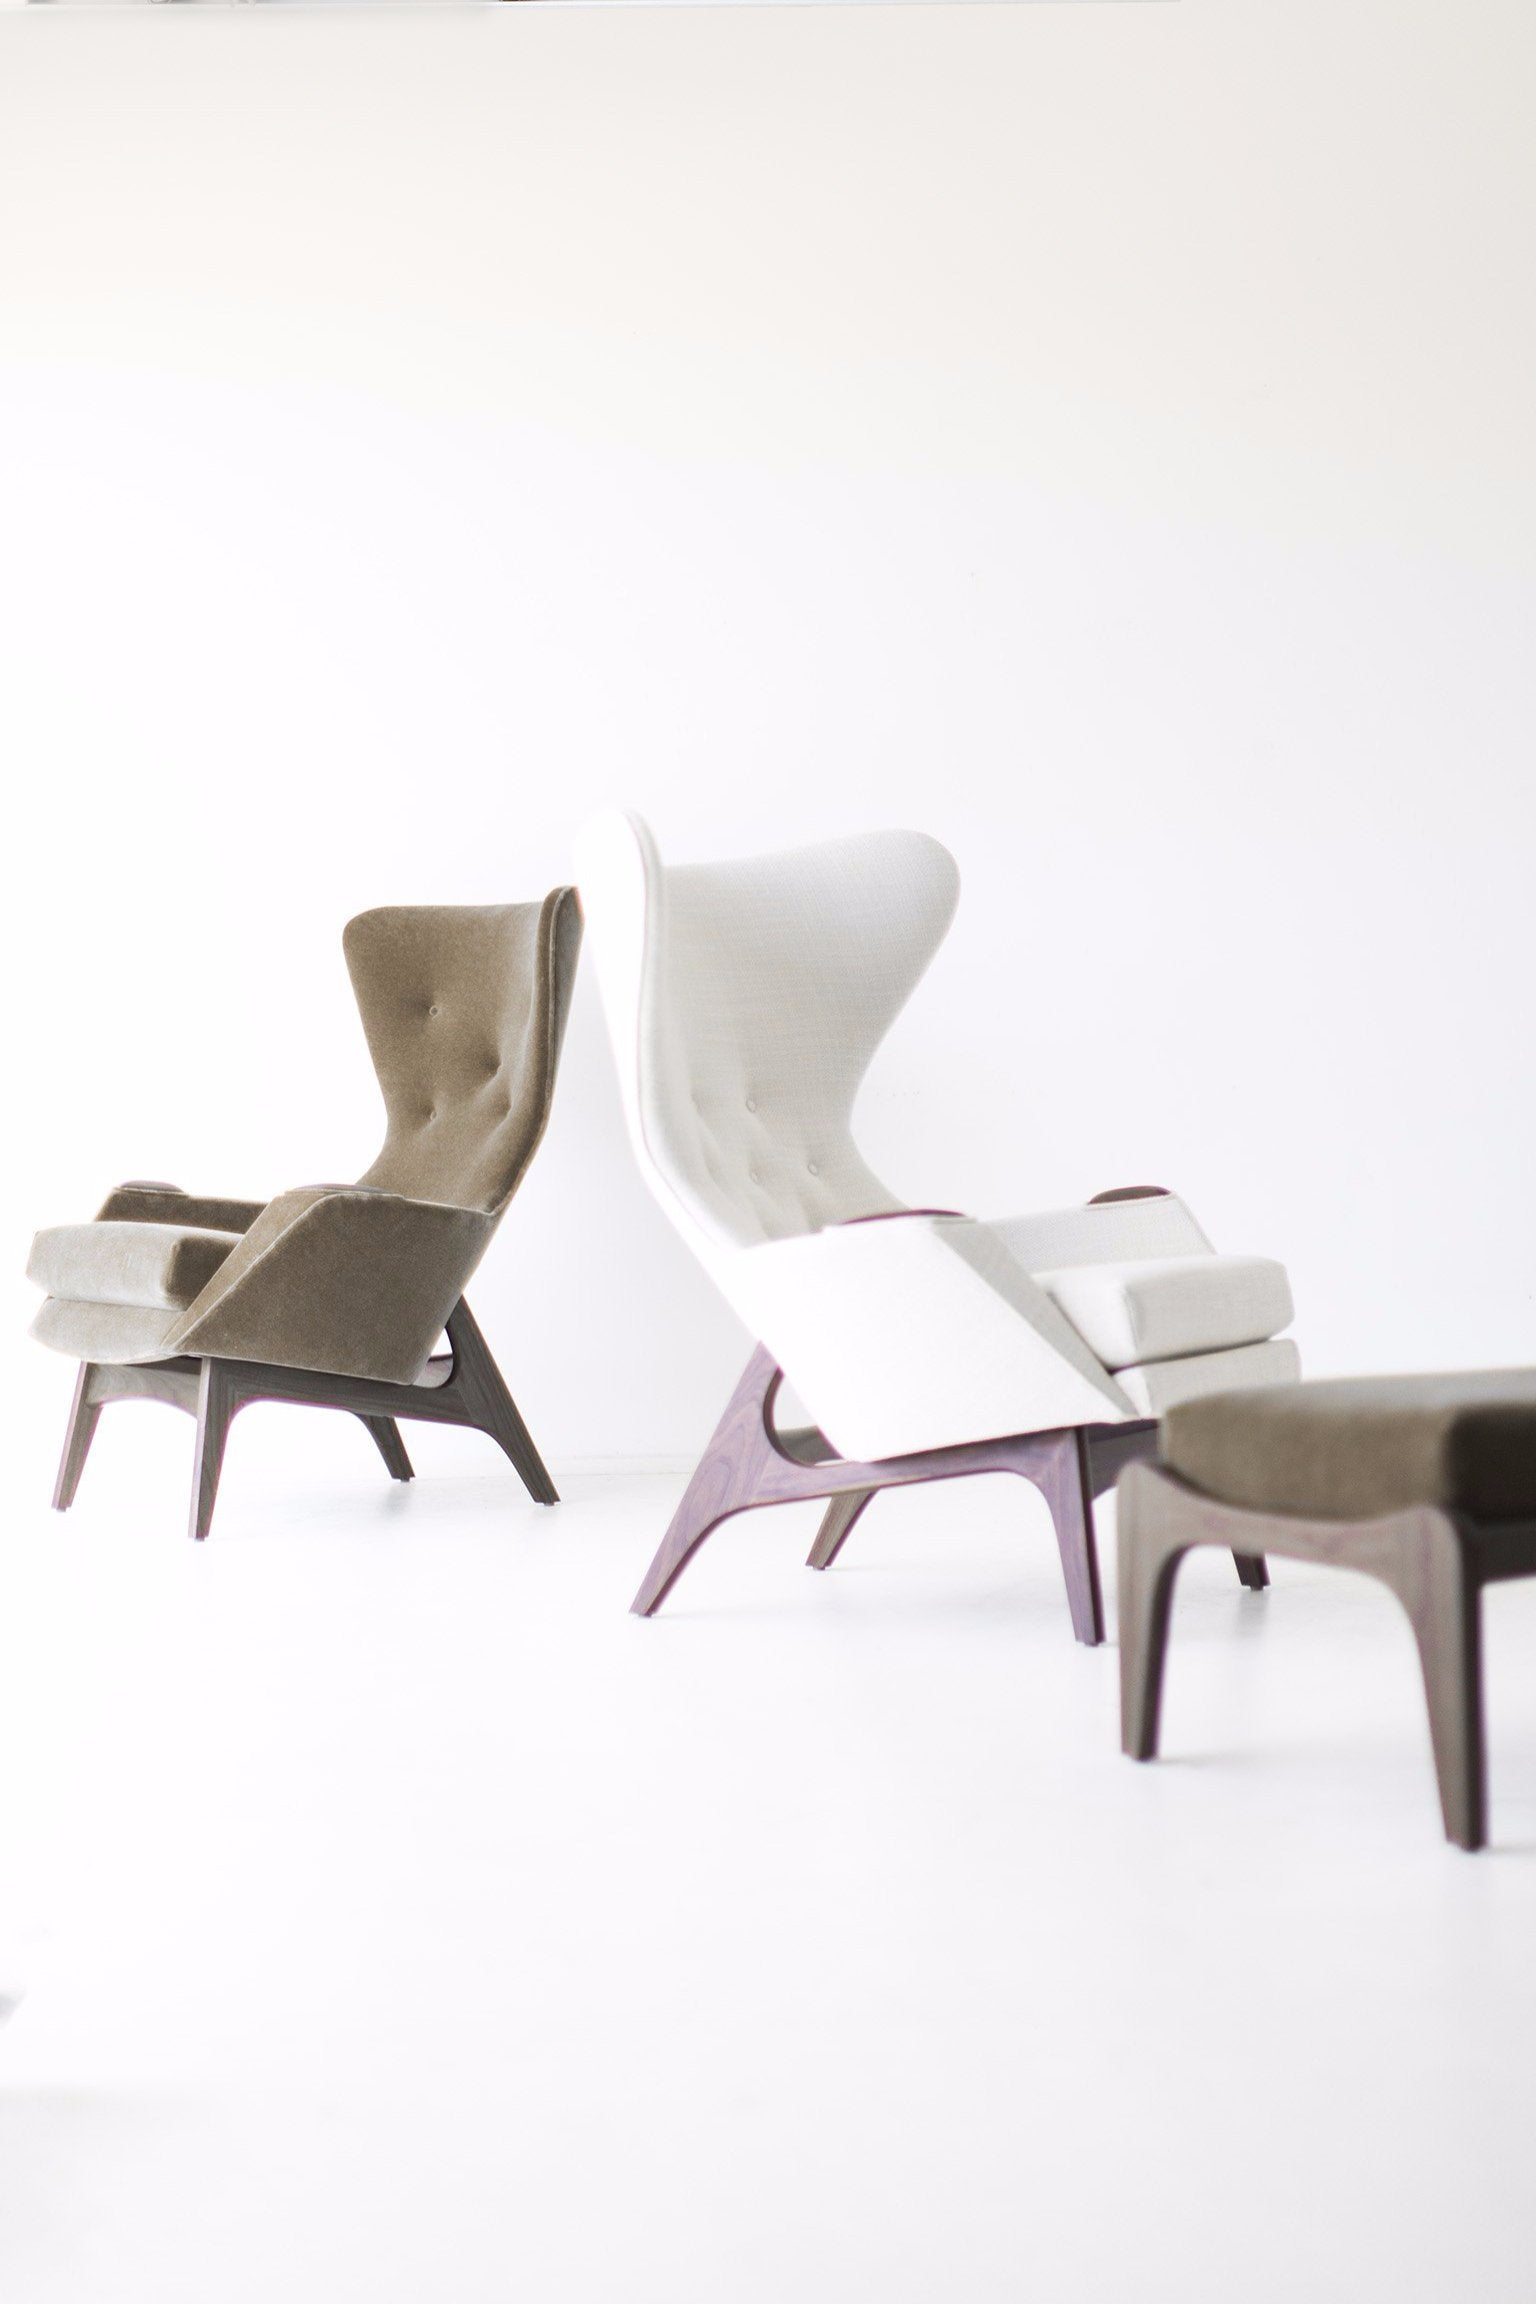 Modern-Mohair-Wing-Chairs-1407-1410-01